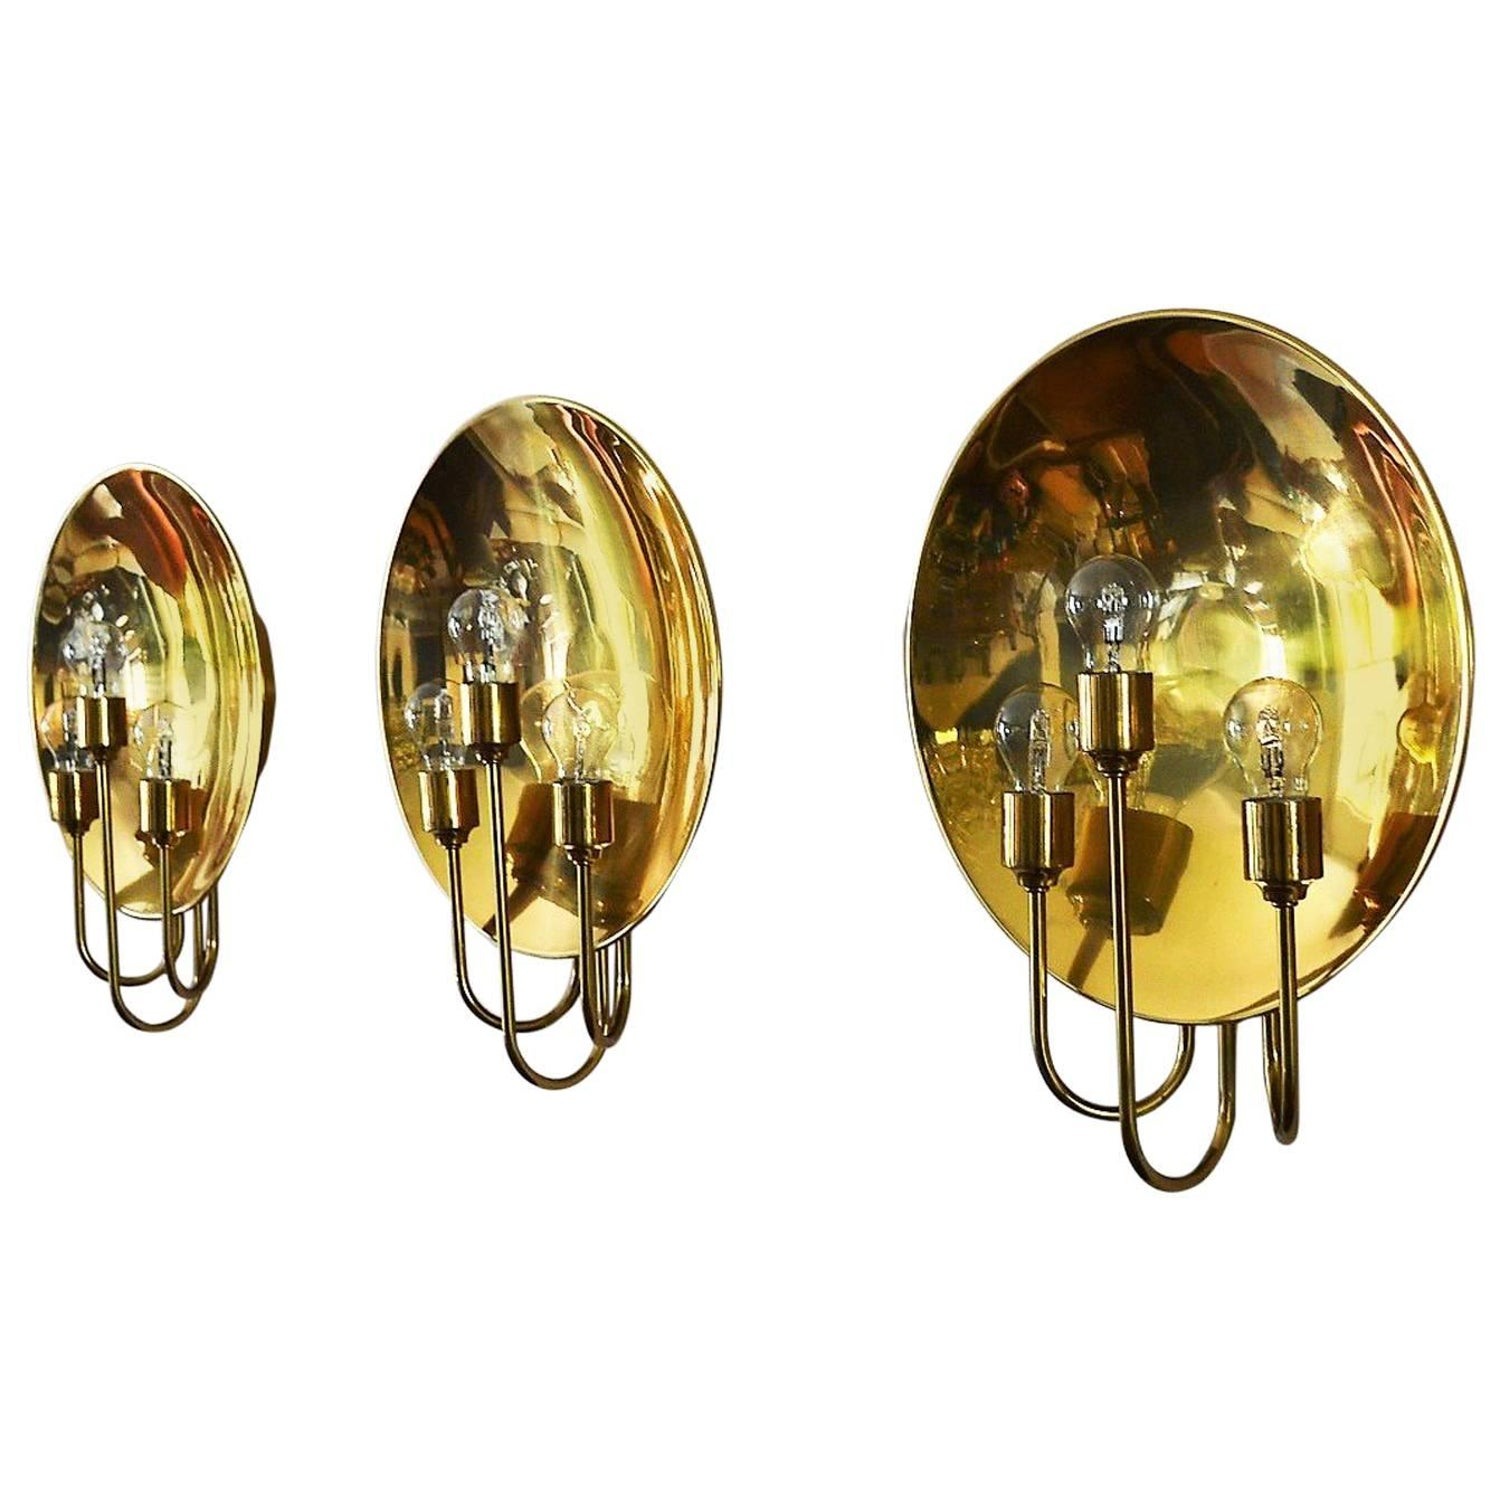 Florian Schulz florian schulz wall lights and sconces 6 for sale at 1stdibs